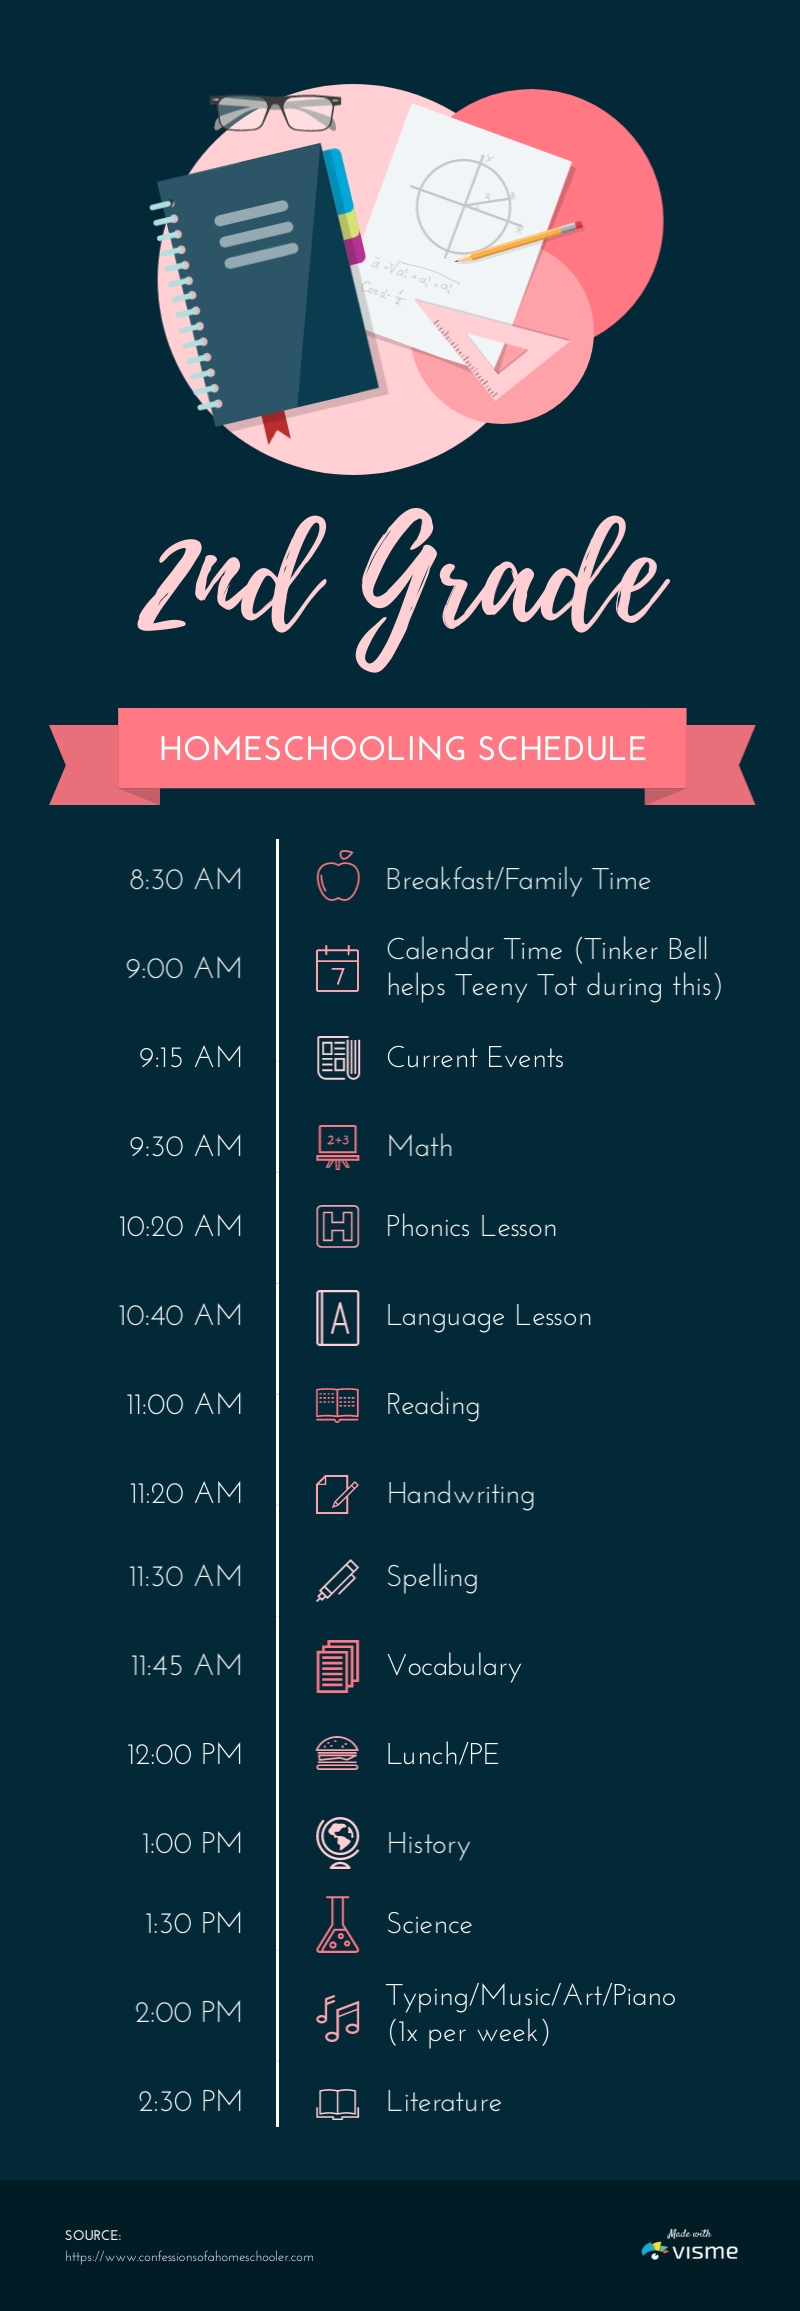 2nd Grade Homeschooling Schedule